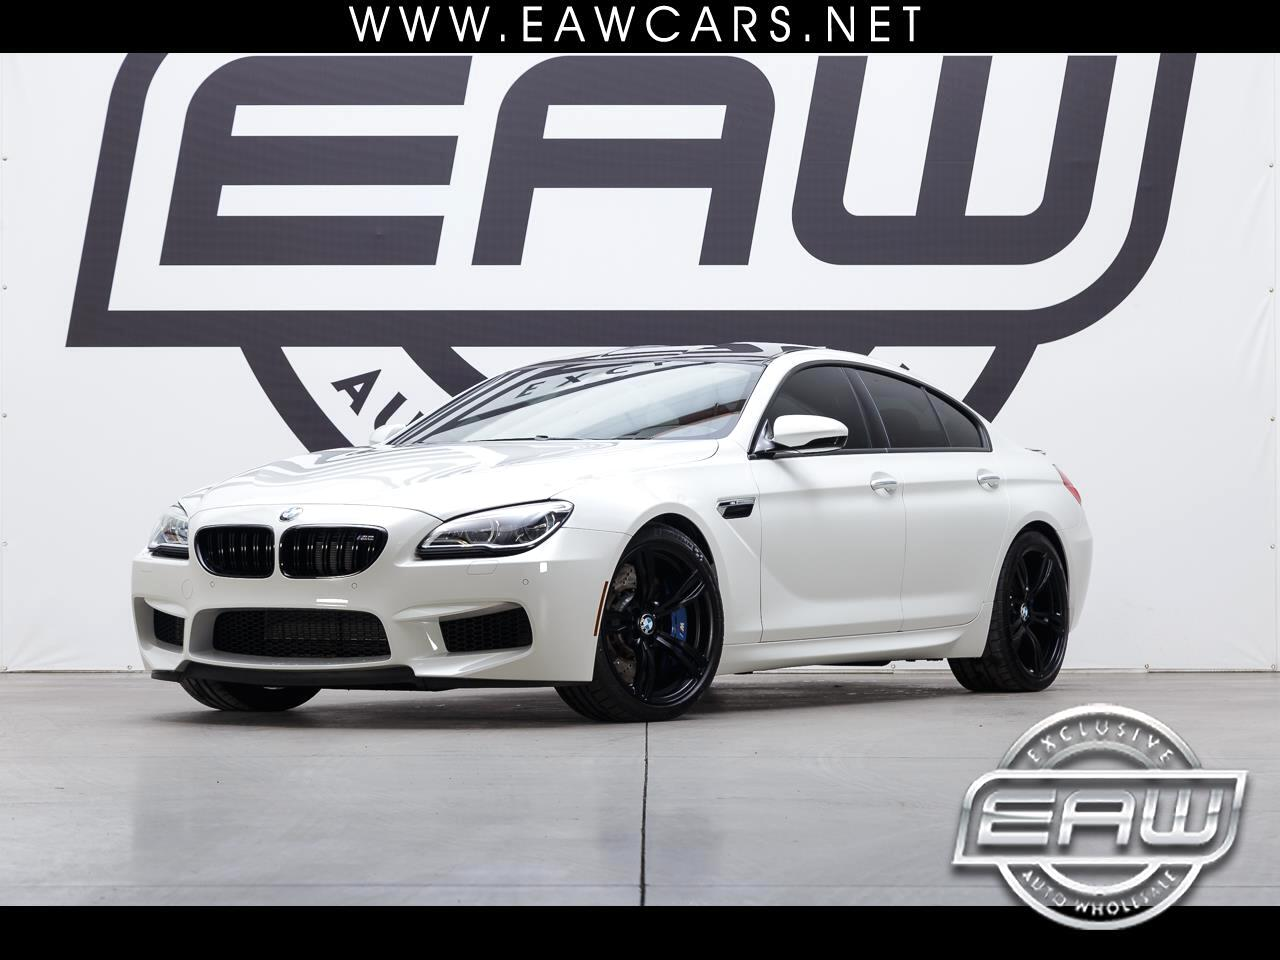 2018 BMW M6 M6 GRAN COUPE 4 DOOR COUPE 4.4L V8 TWIN TURBO